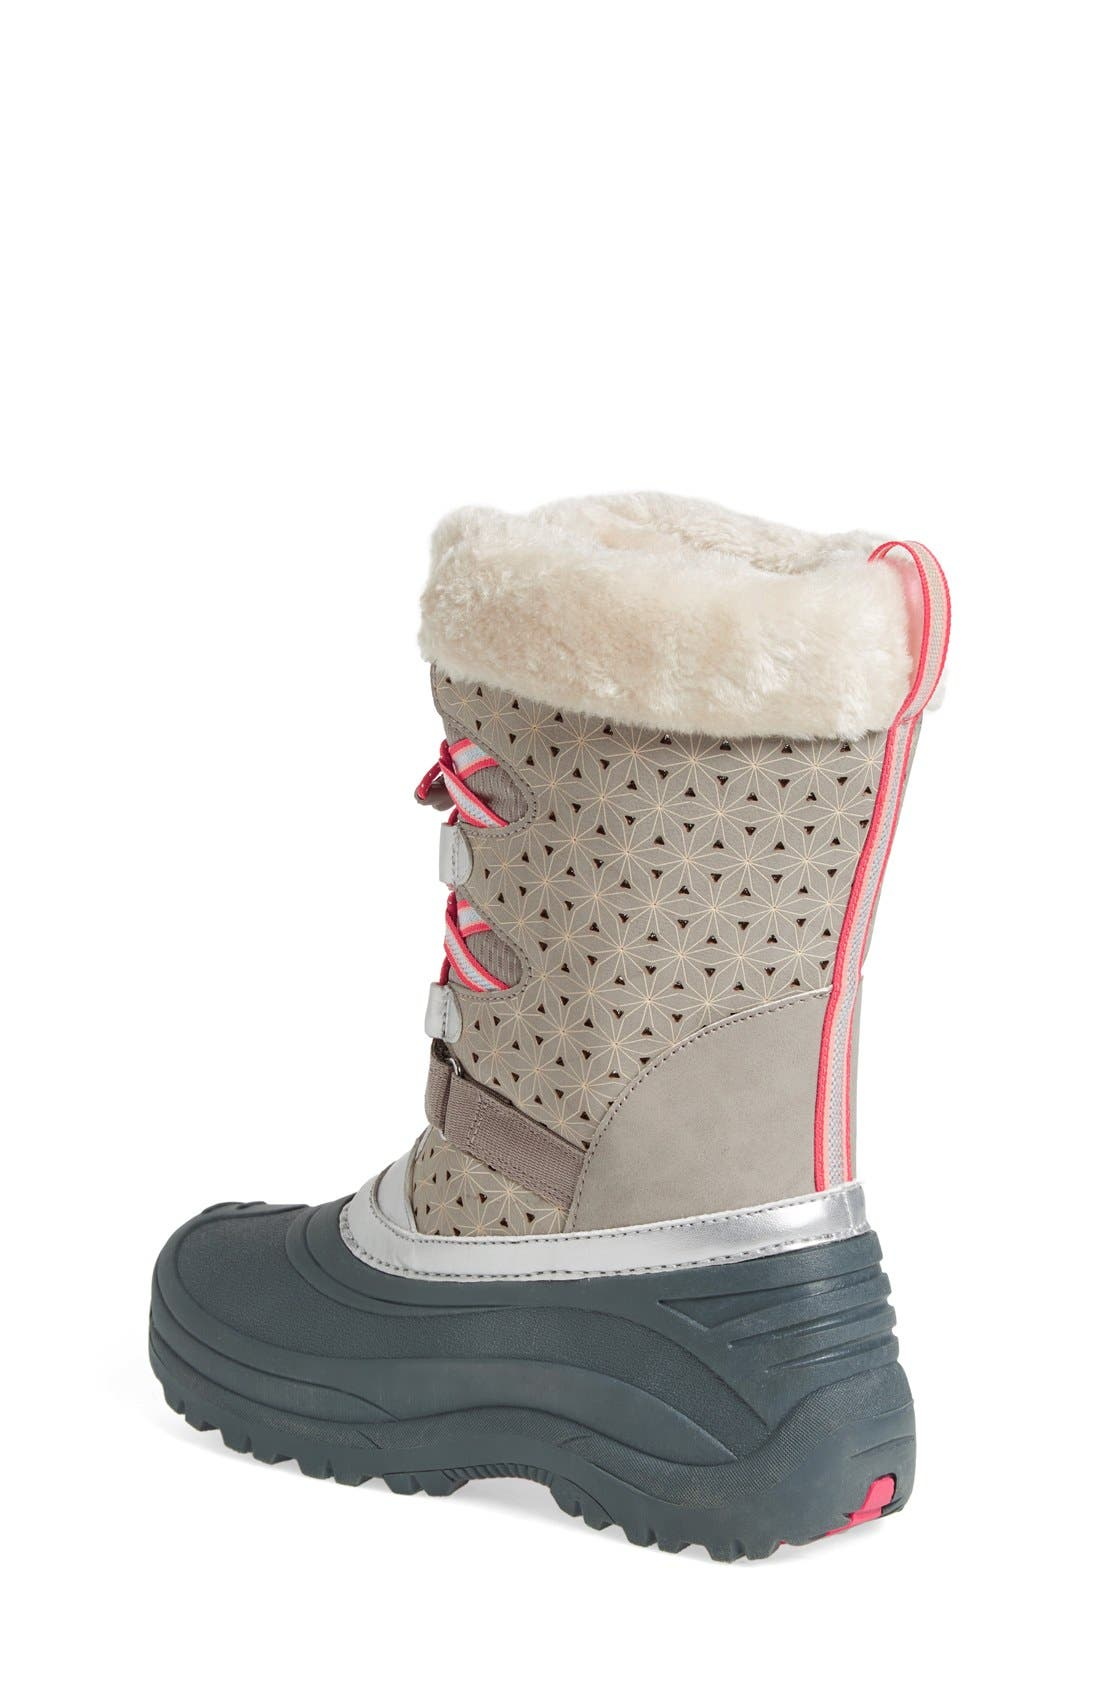 'Venom' Waterproof Insulated Snow Boot,                             Alternate thumbnail 3, color,